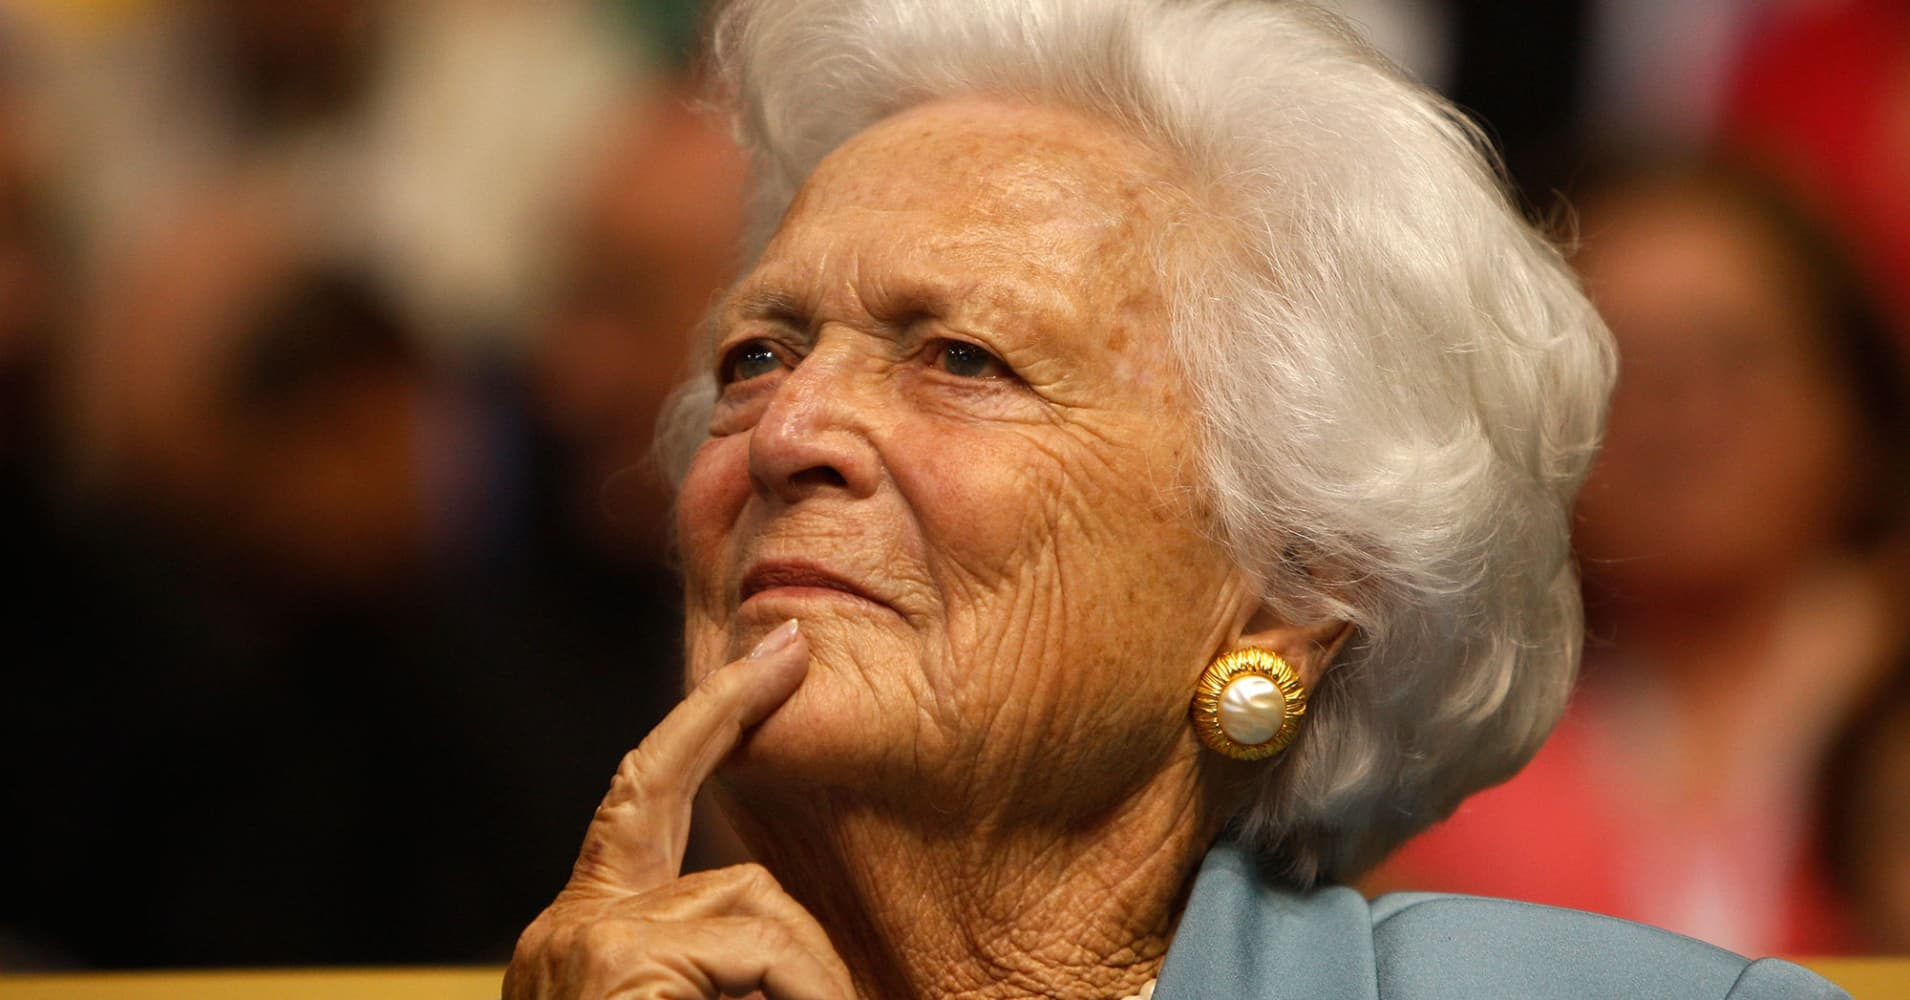 Former first lady Barbara Bush attends day two of the Republican National Convention (RNC) at the Xcel Energy Center on September 2, 2008 in St. Paul, Minnesota. The GOP will nominate U.S. Sen. John McCain (R-AZ) as the Republican choice for U.S. President on the last day of the convention.